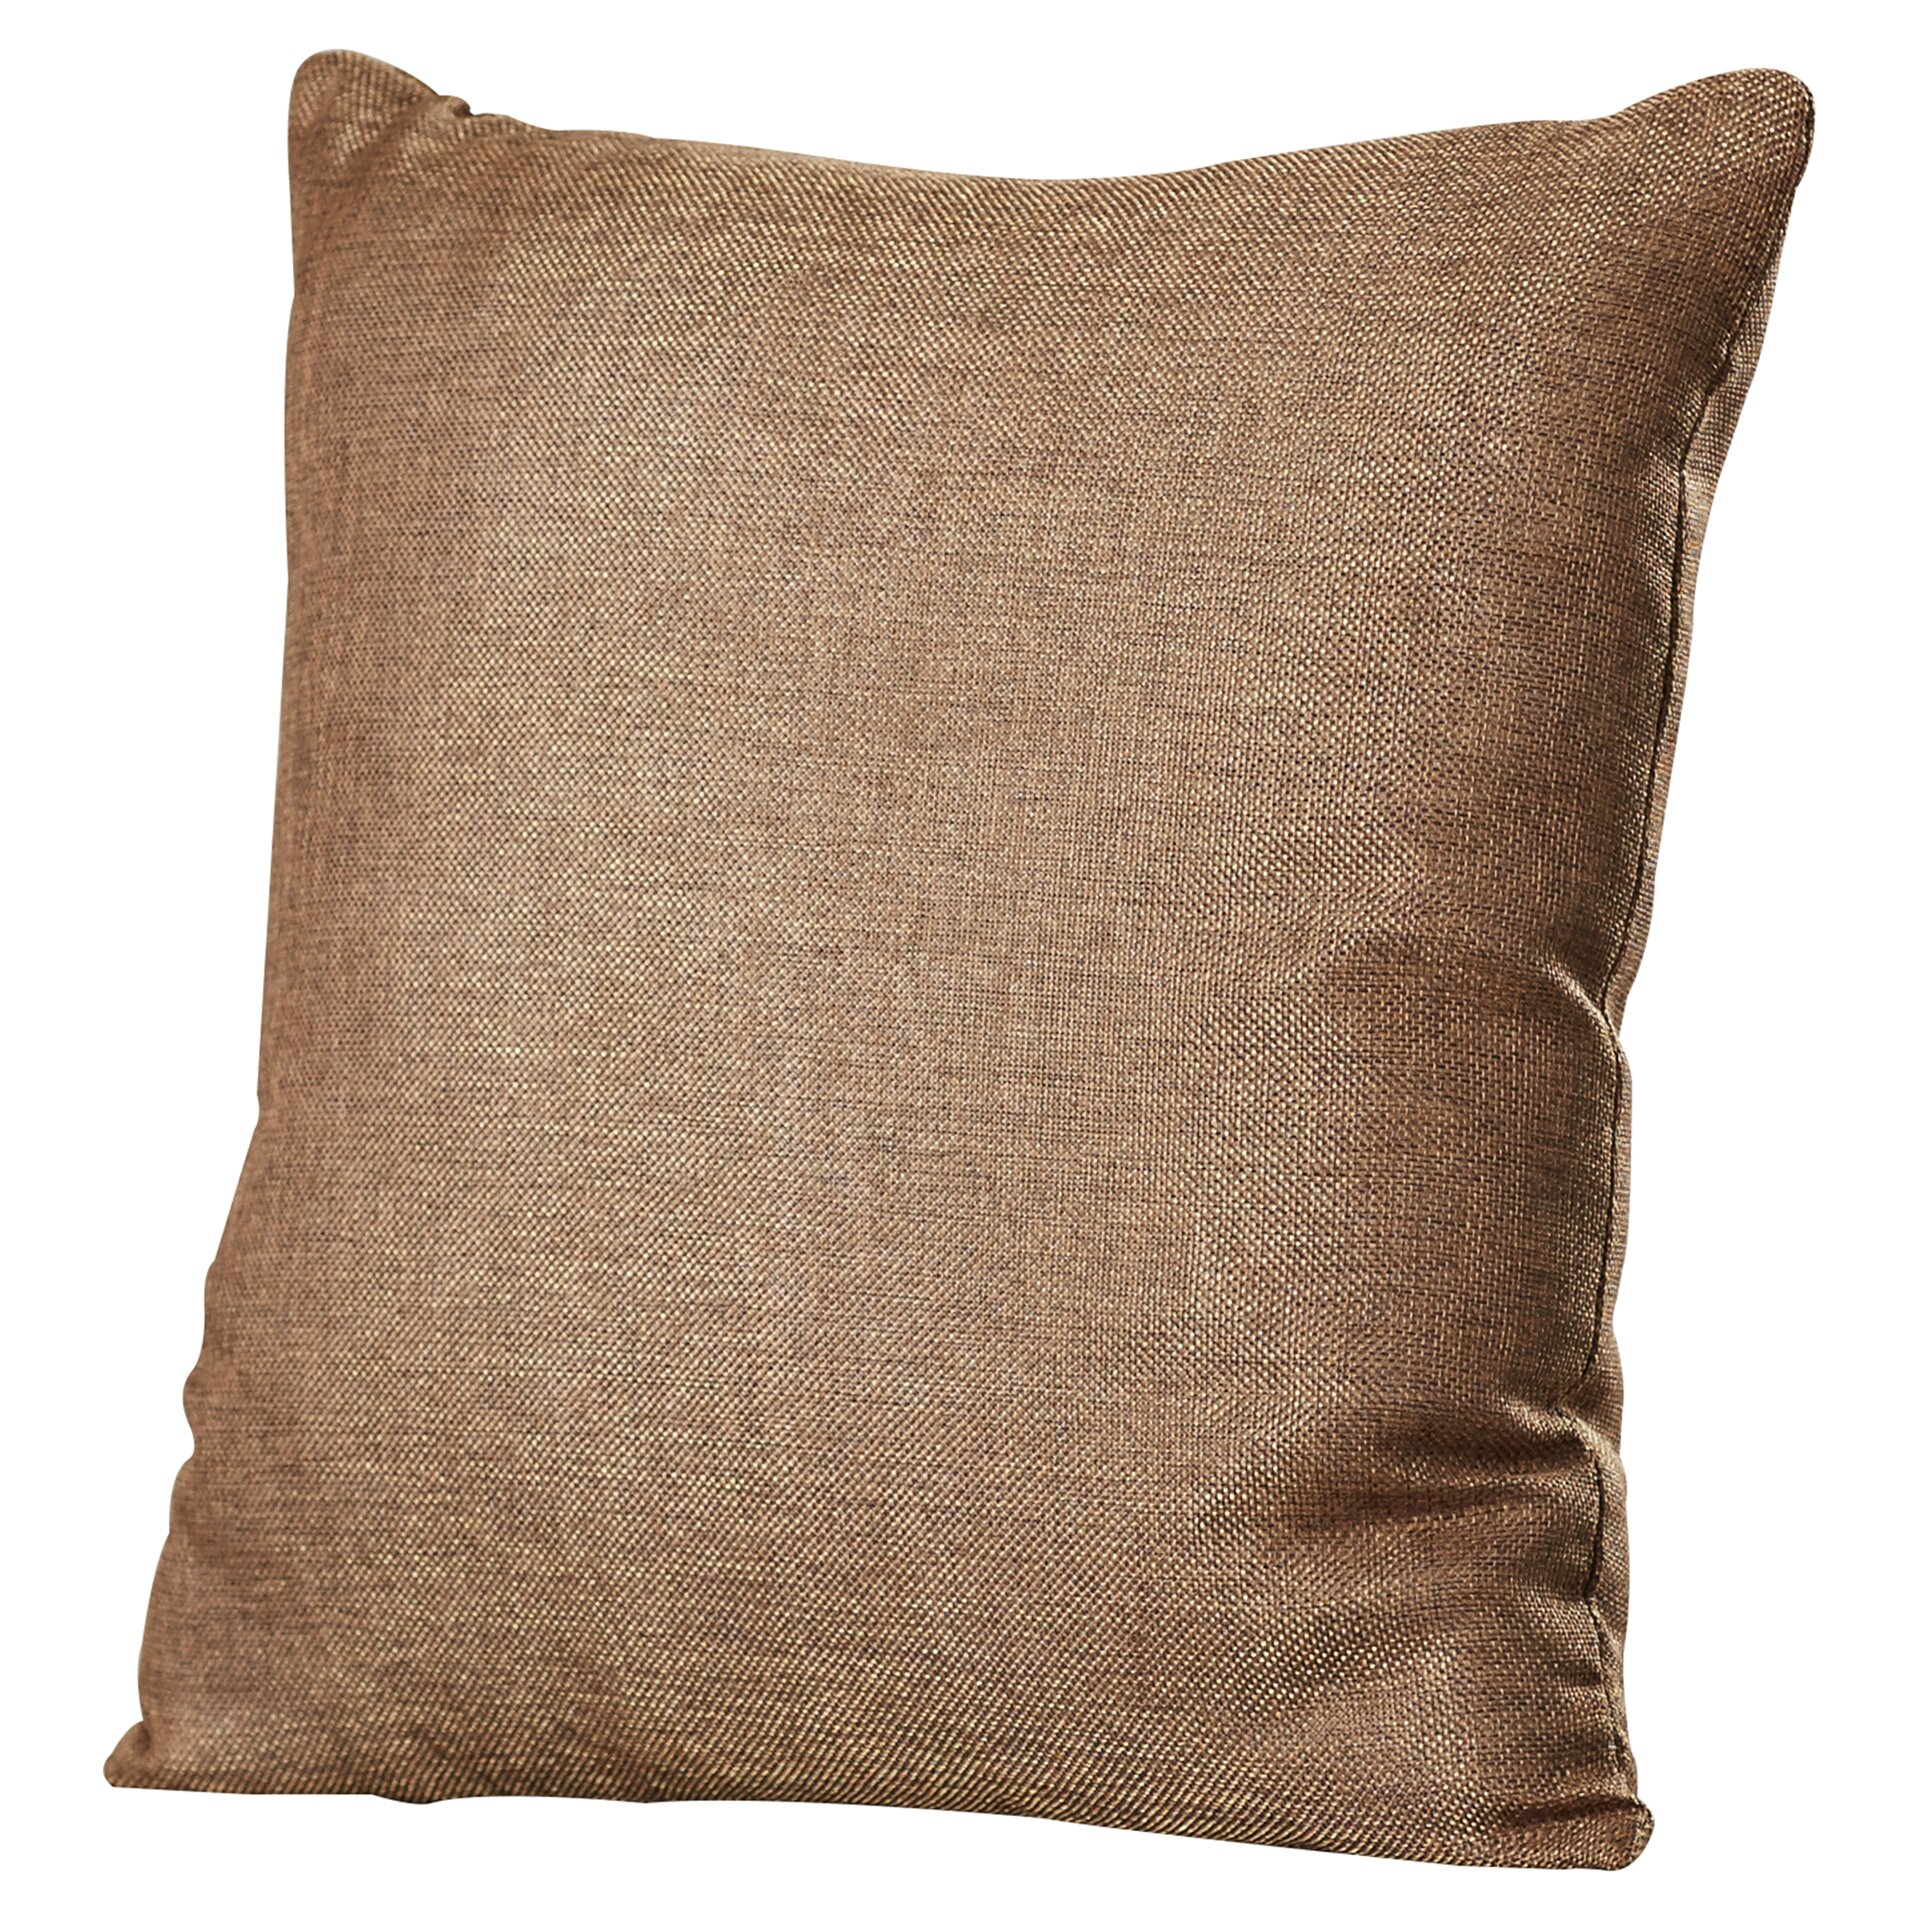 Decorative Pillow Wayfair : Wayfair Basics Wayfair Basics 18